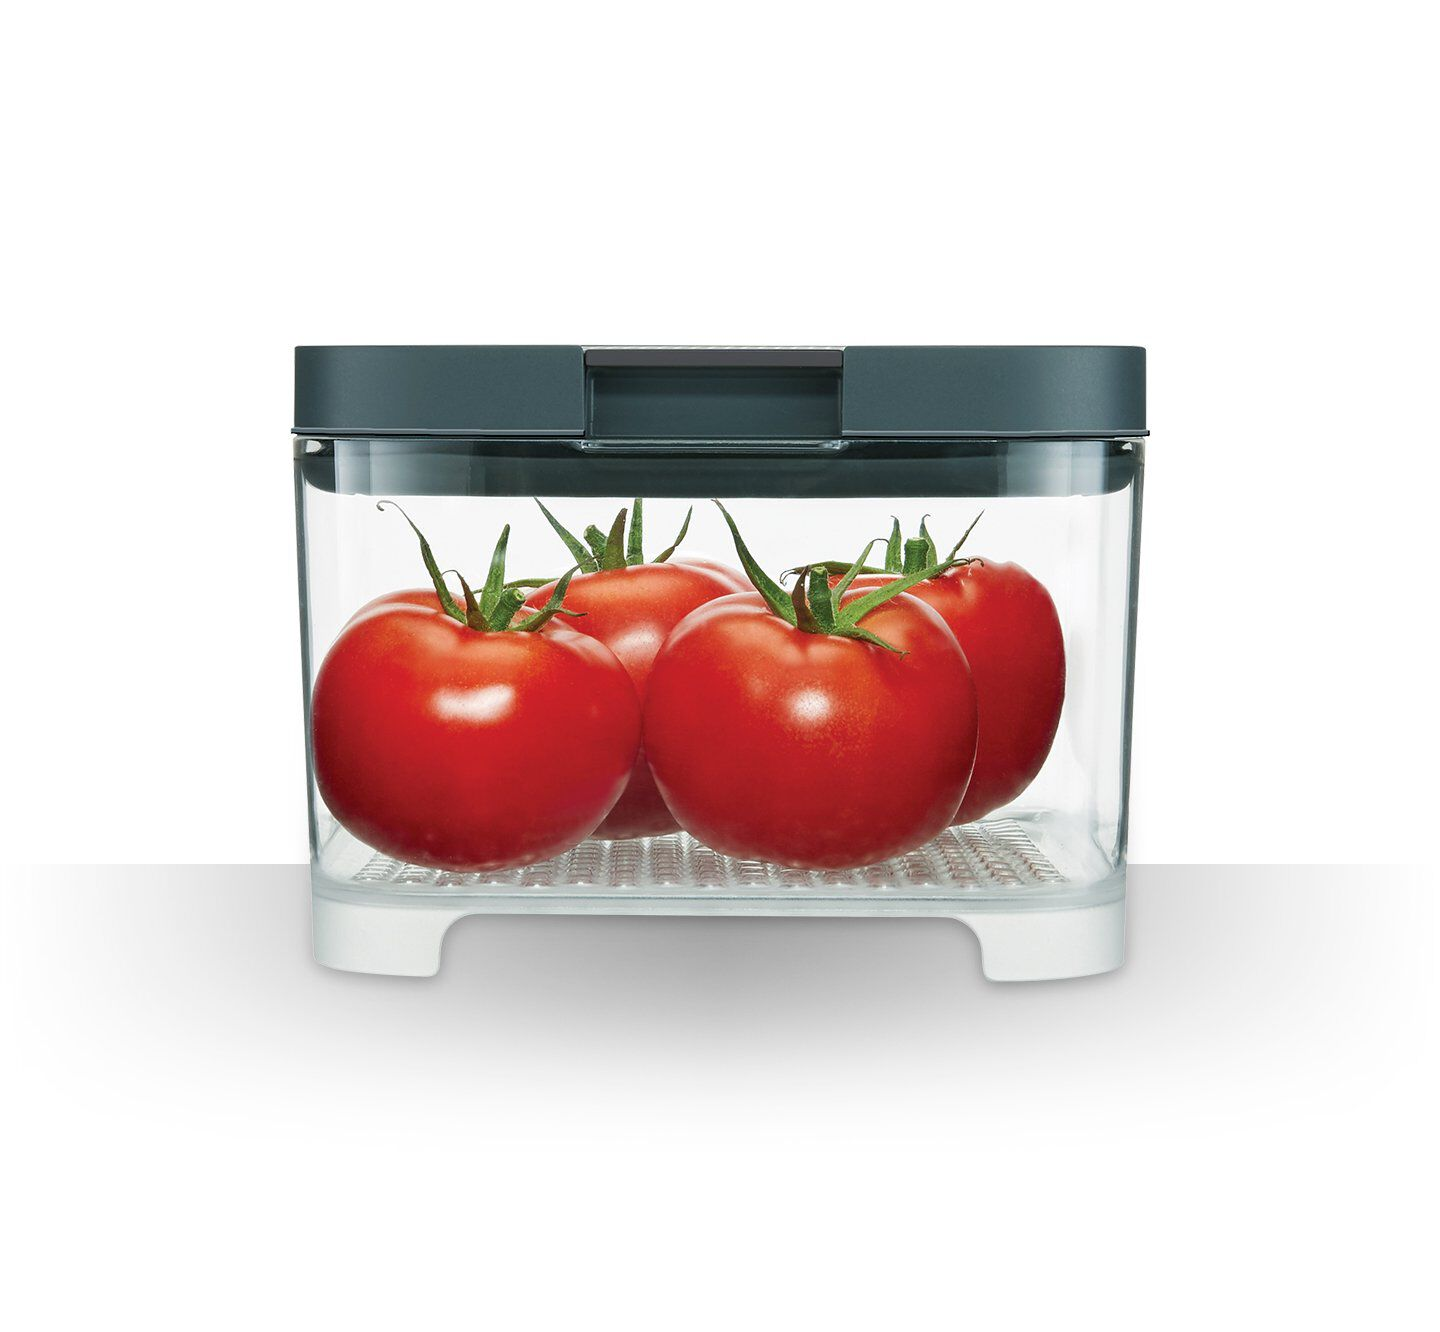 Rubbermaid FreshWorks countertop produce storage containers tomatoes